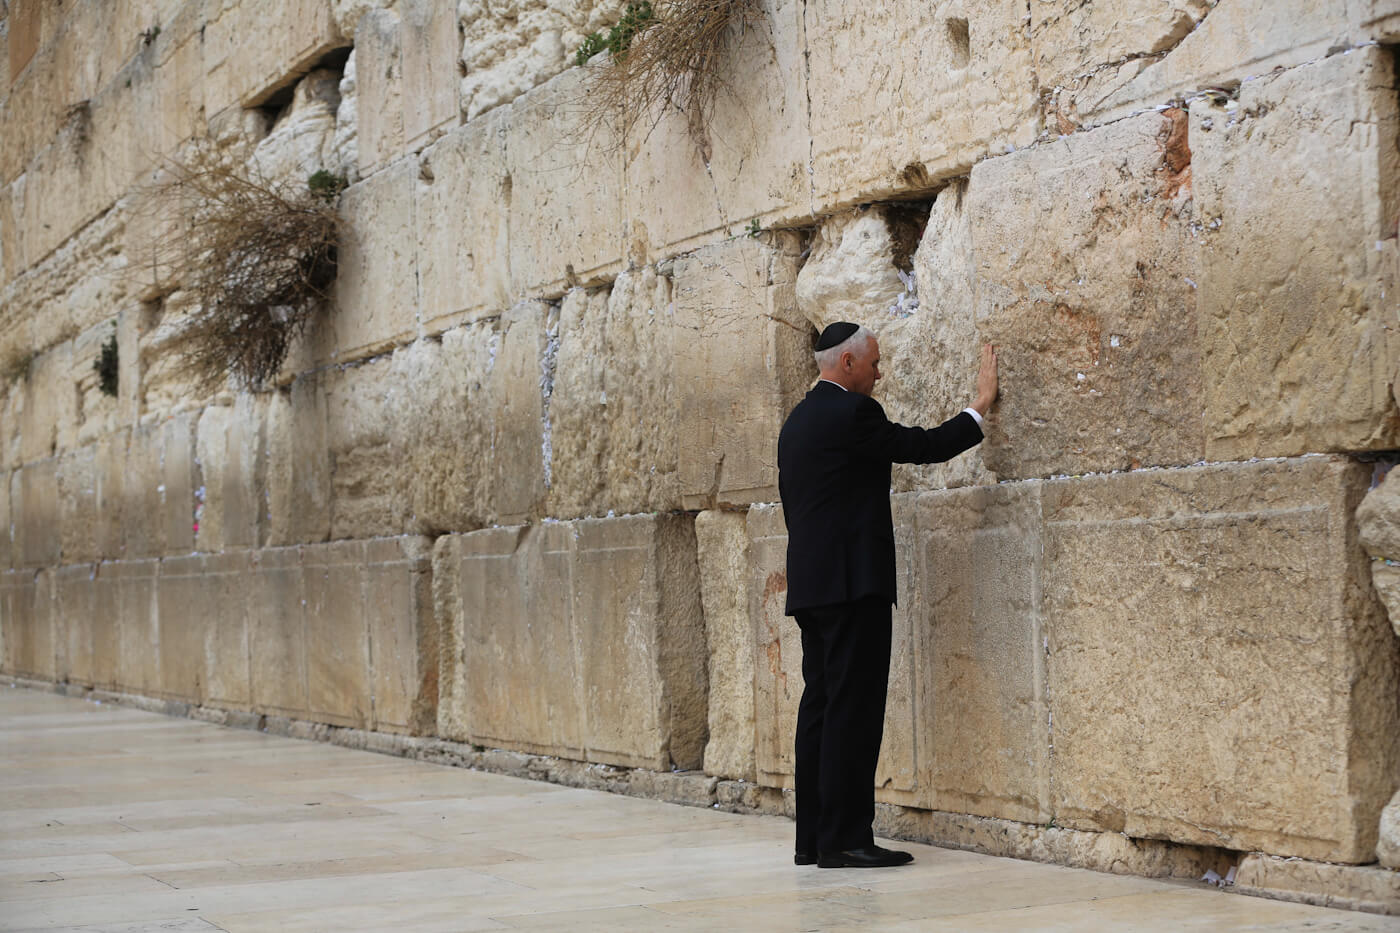 Pence visits the Western Wall, Judaism's holiest site in Jerusalem's Old City, Jan. 23, 2018. Oded Balilty | AP